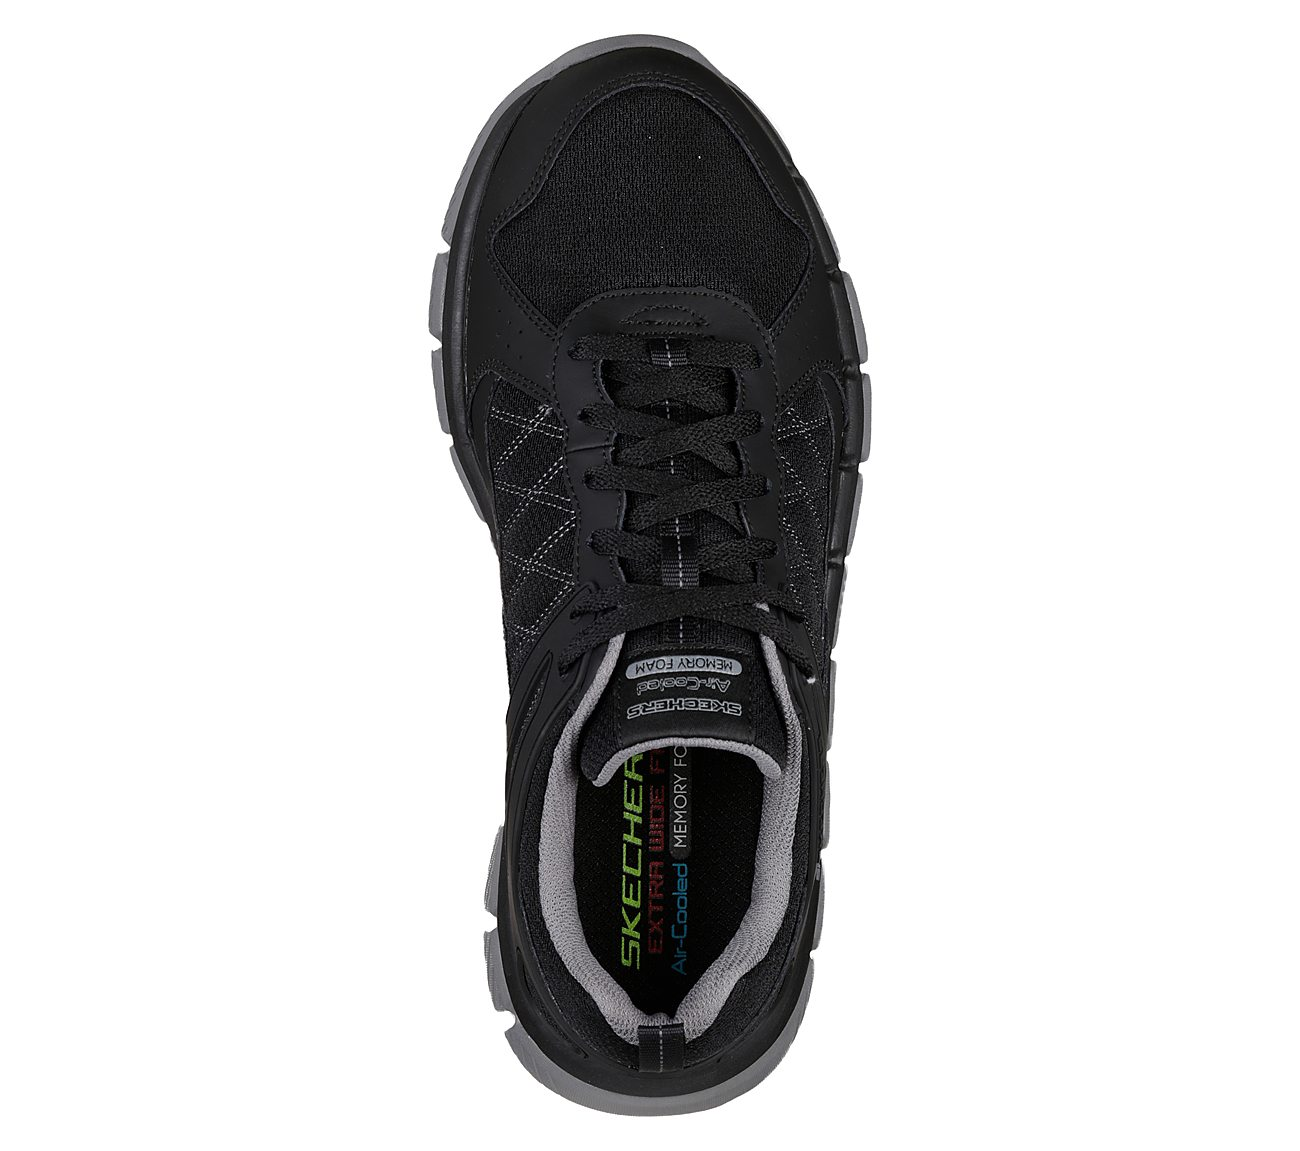 19b9f32cdab3 Buy SKECHERS Relaxed Fit  Skech-Flex 2.0 - High Knoll Relaxed Fit ...